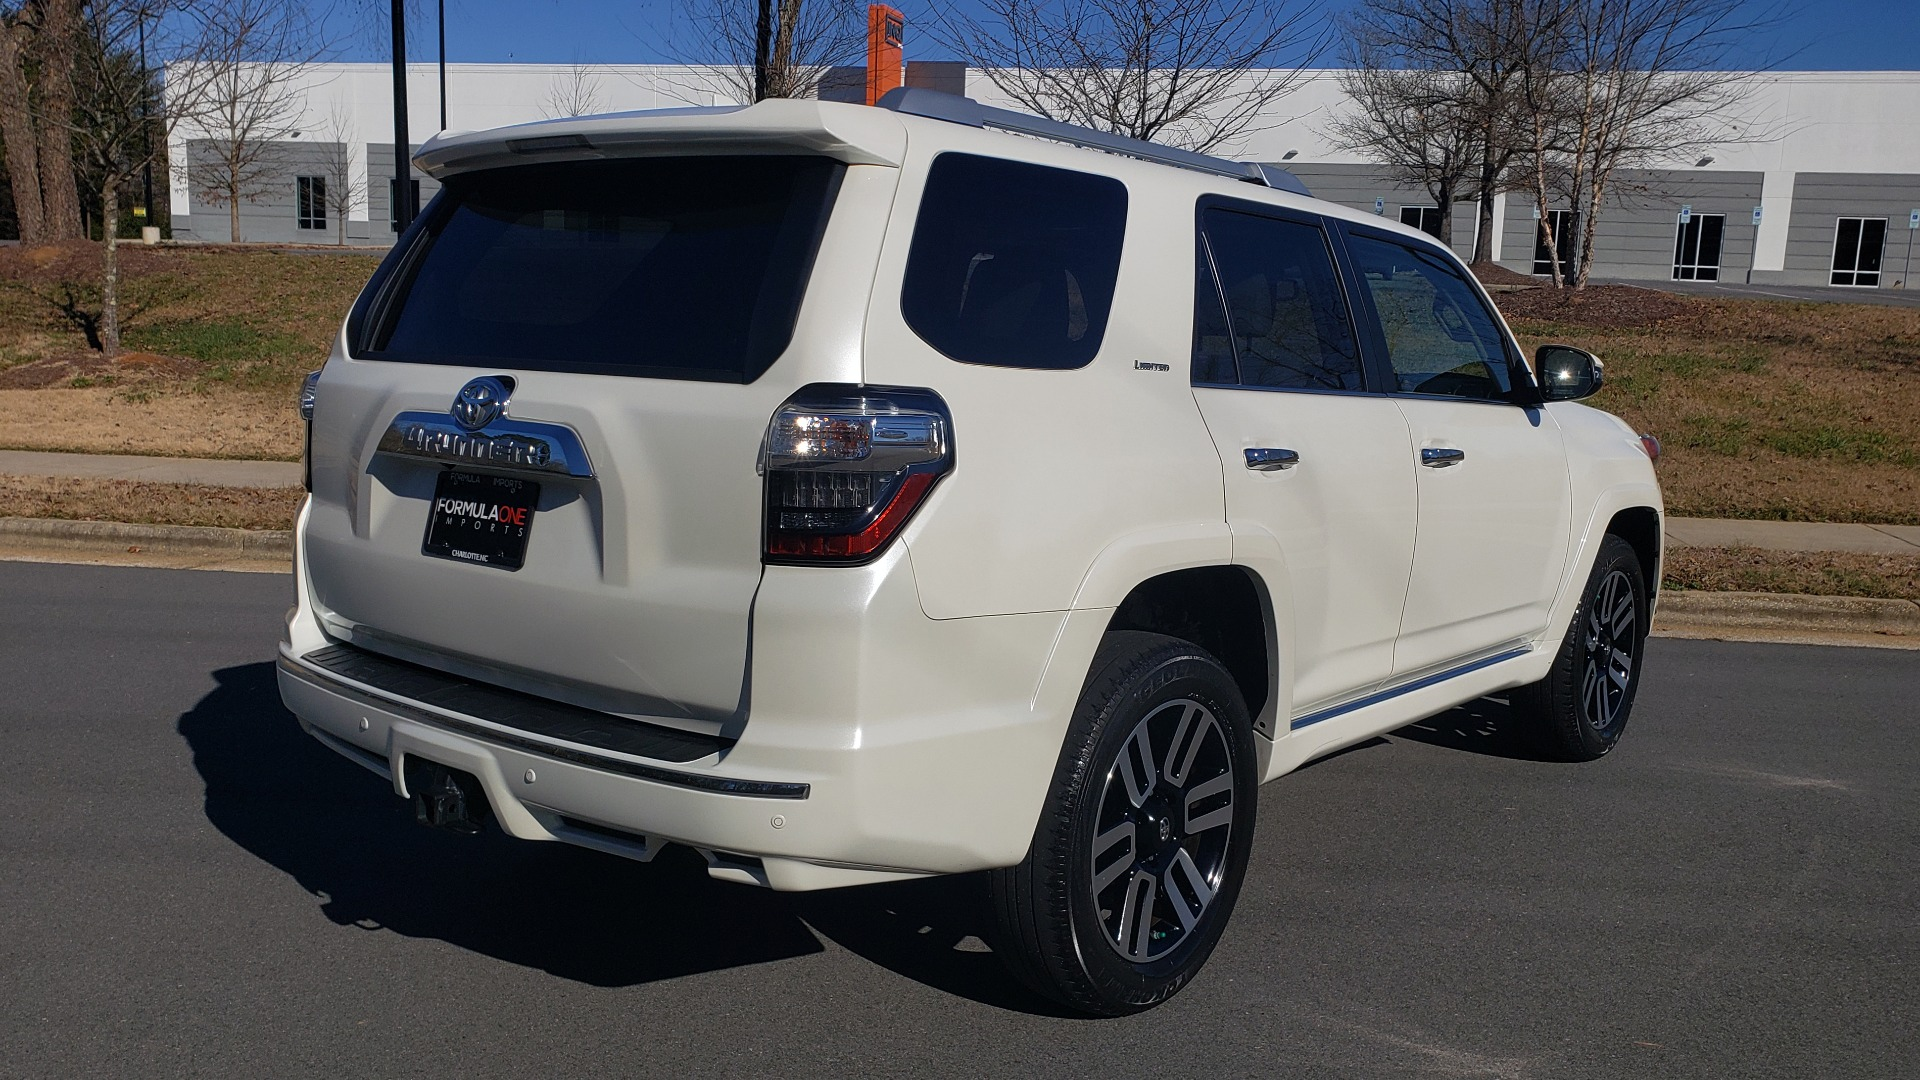 Used 2018 Toyota 4RUNNER LIMITED 4X4 / 4.0L V6 / AUTO / NAV / SUNROOF / JBL AUDIO / REARVIEW for sale Sold at Formula Imports in Charlotte NC 28227 6